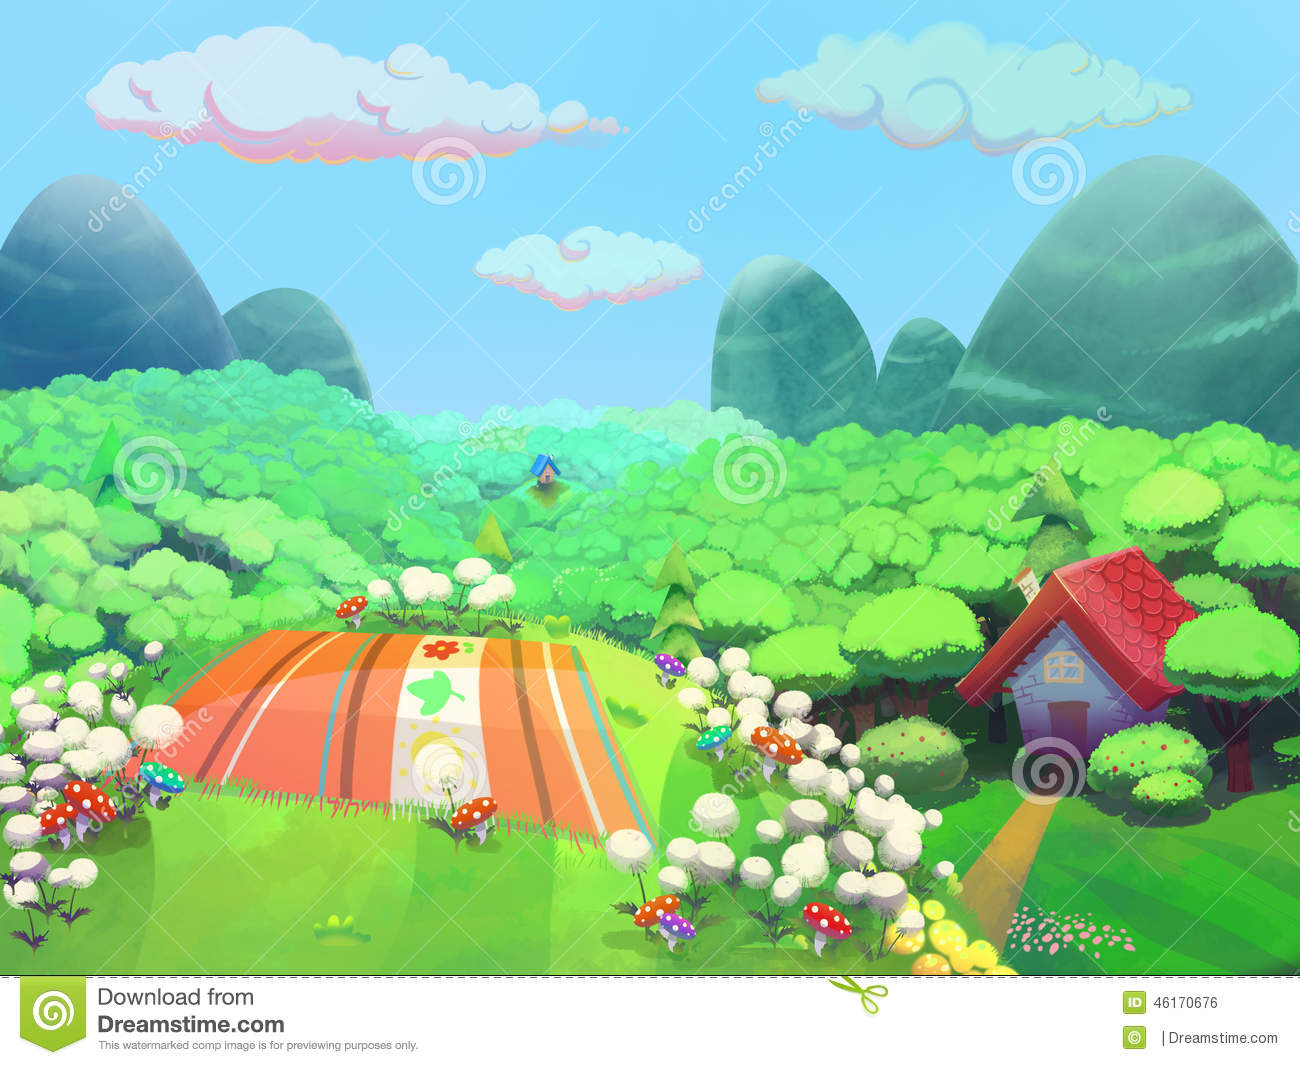 ... House Drawn In Cartoon Style Stock Illustration - Image: 46170676